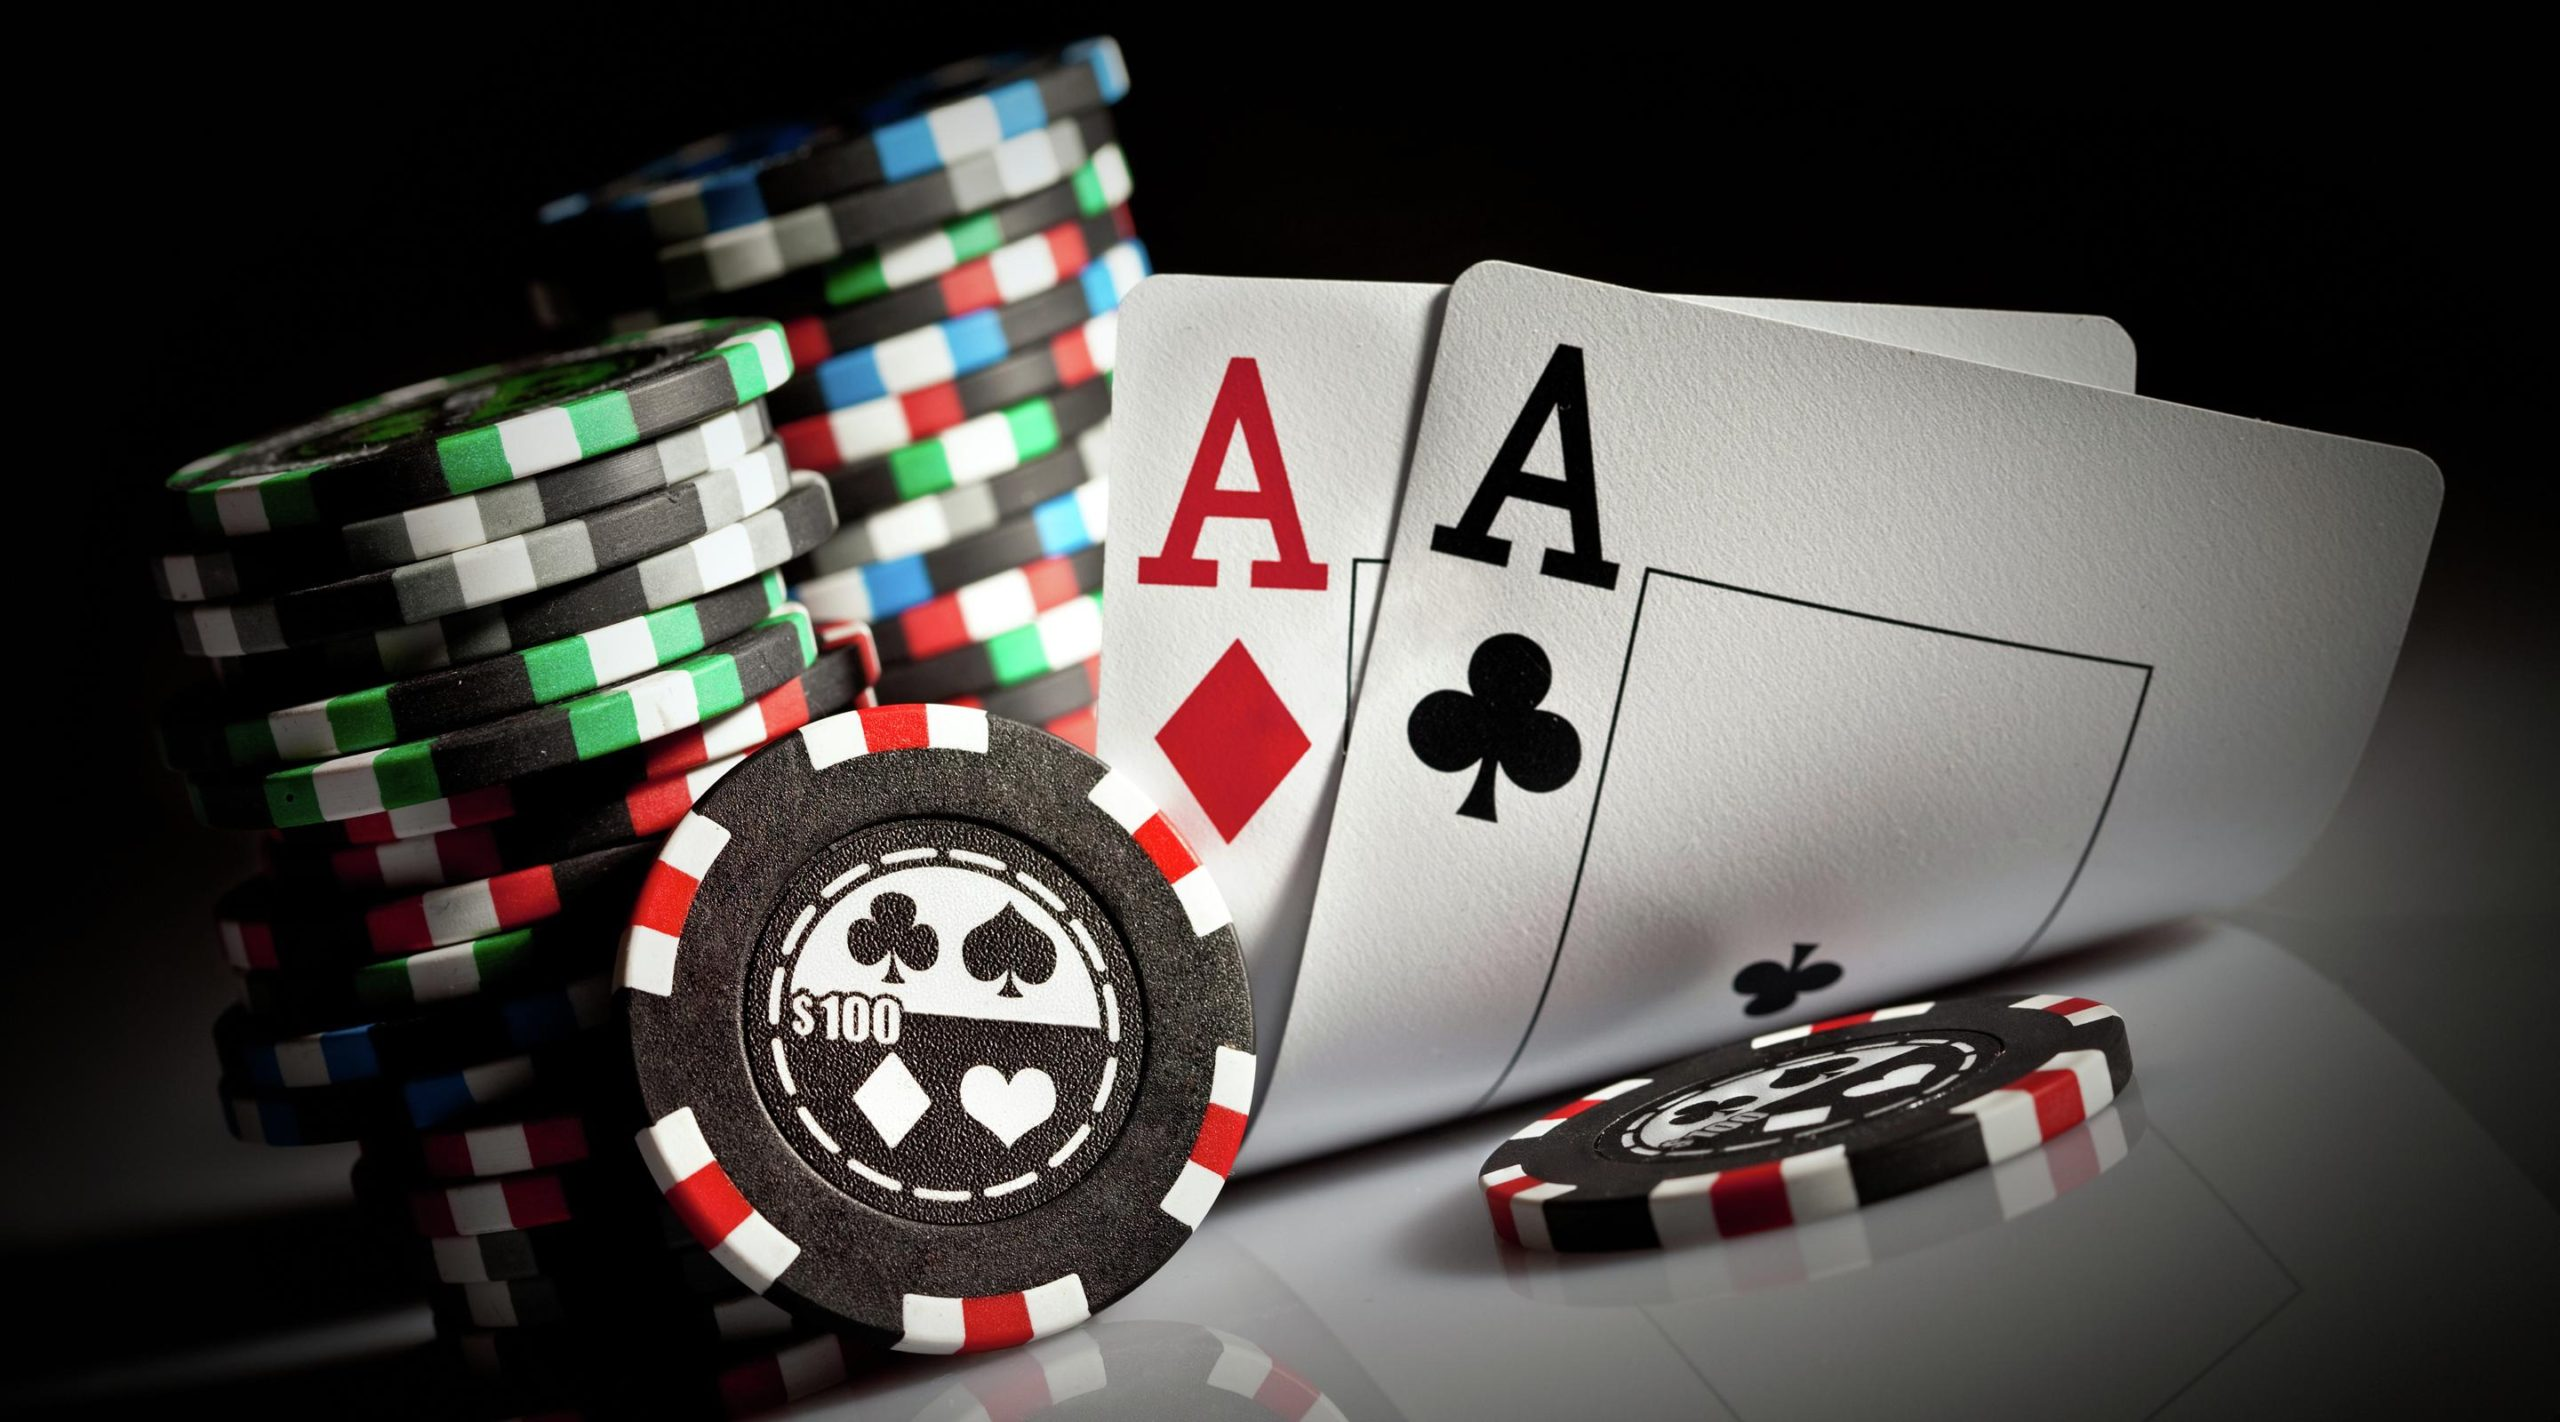 Play Poker Cheating Game How To Win More